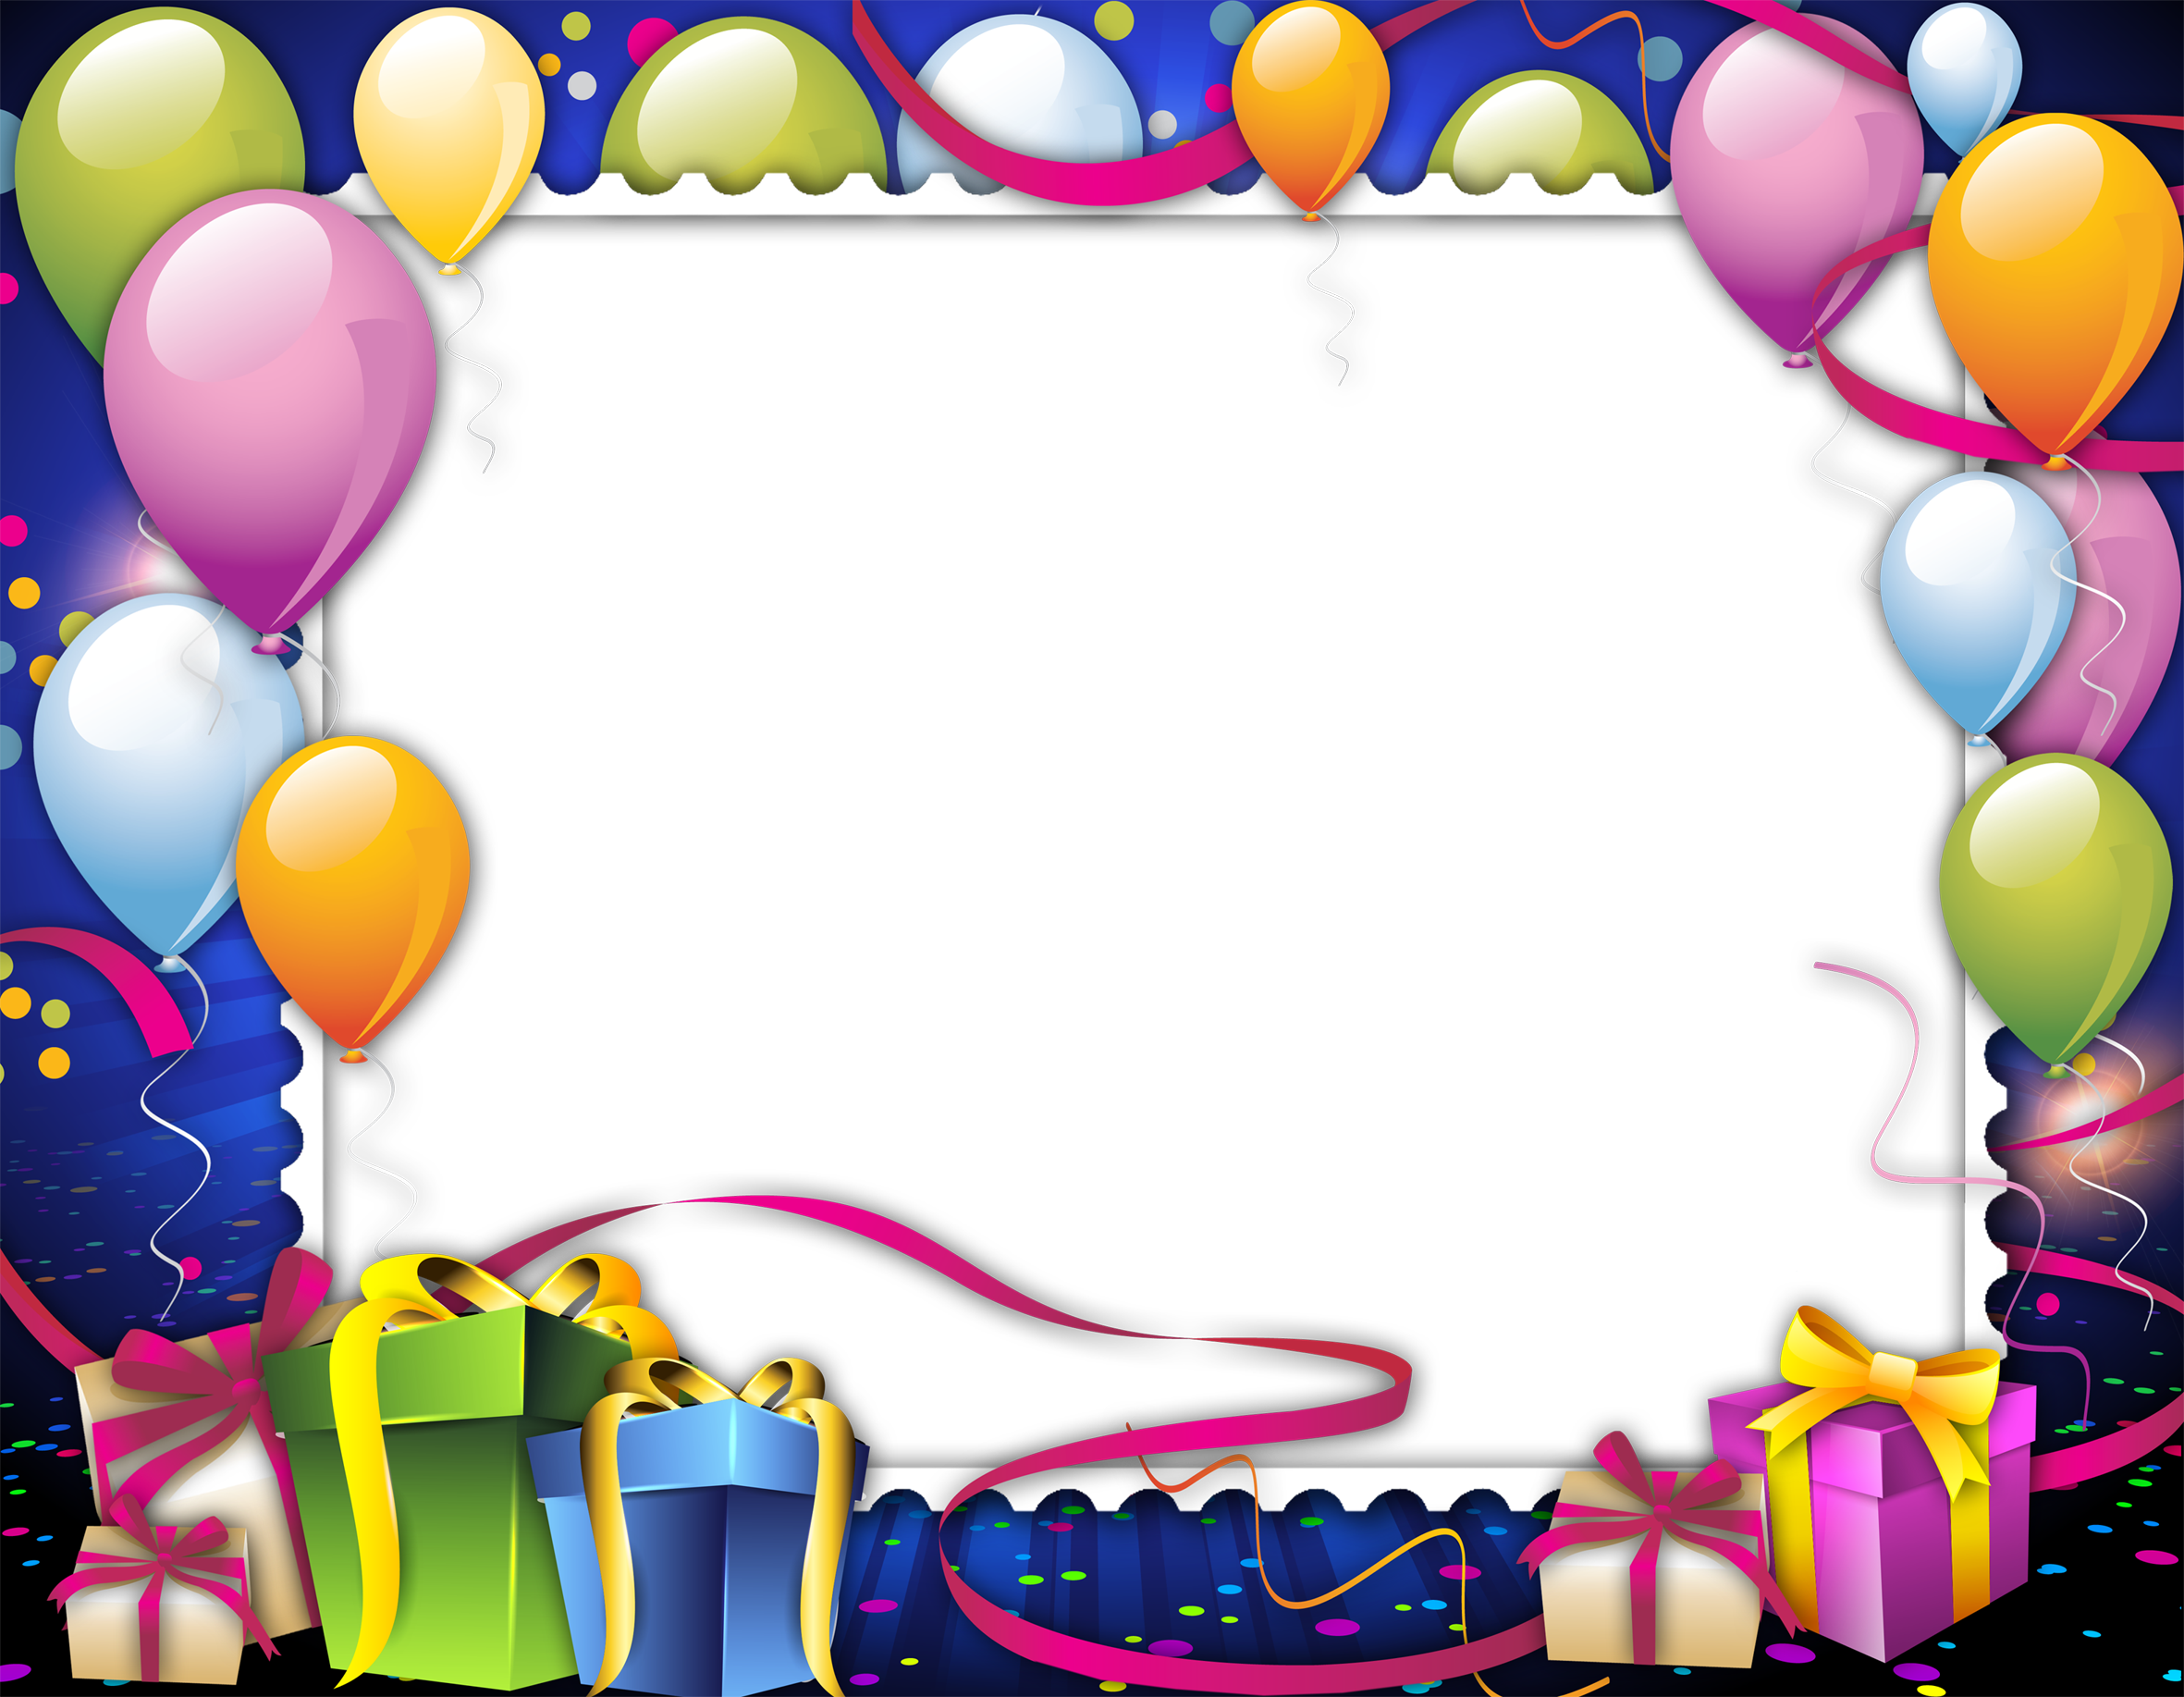 Birthday background png. Frame images free download